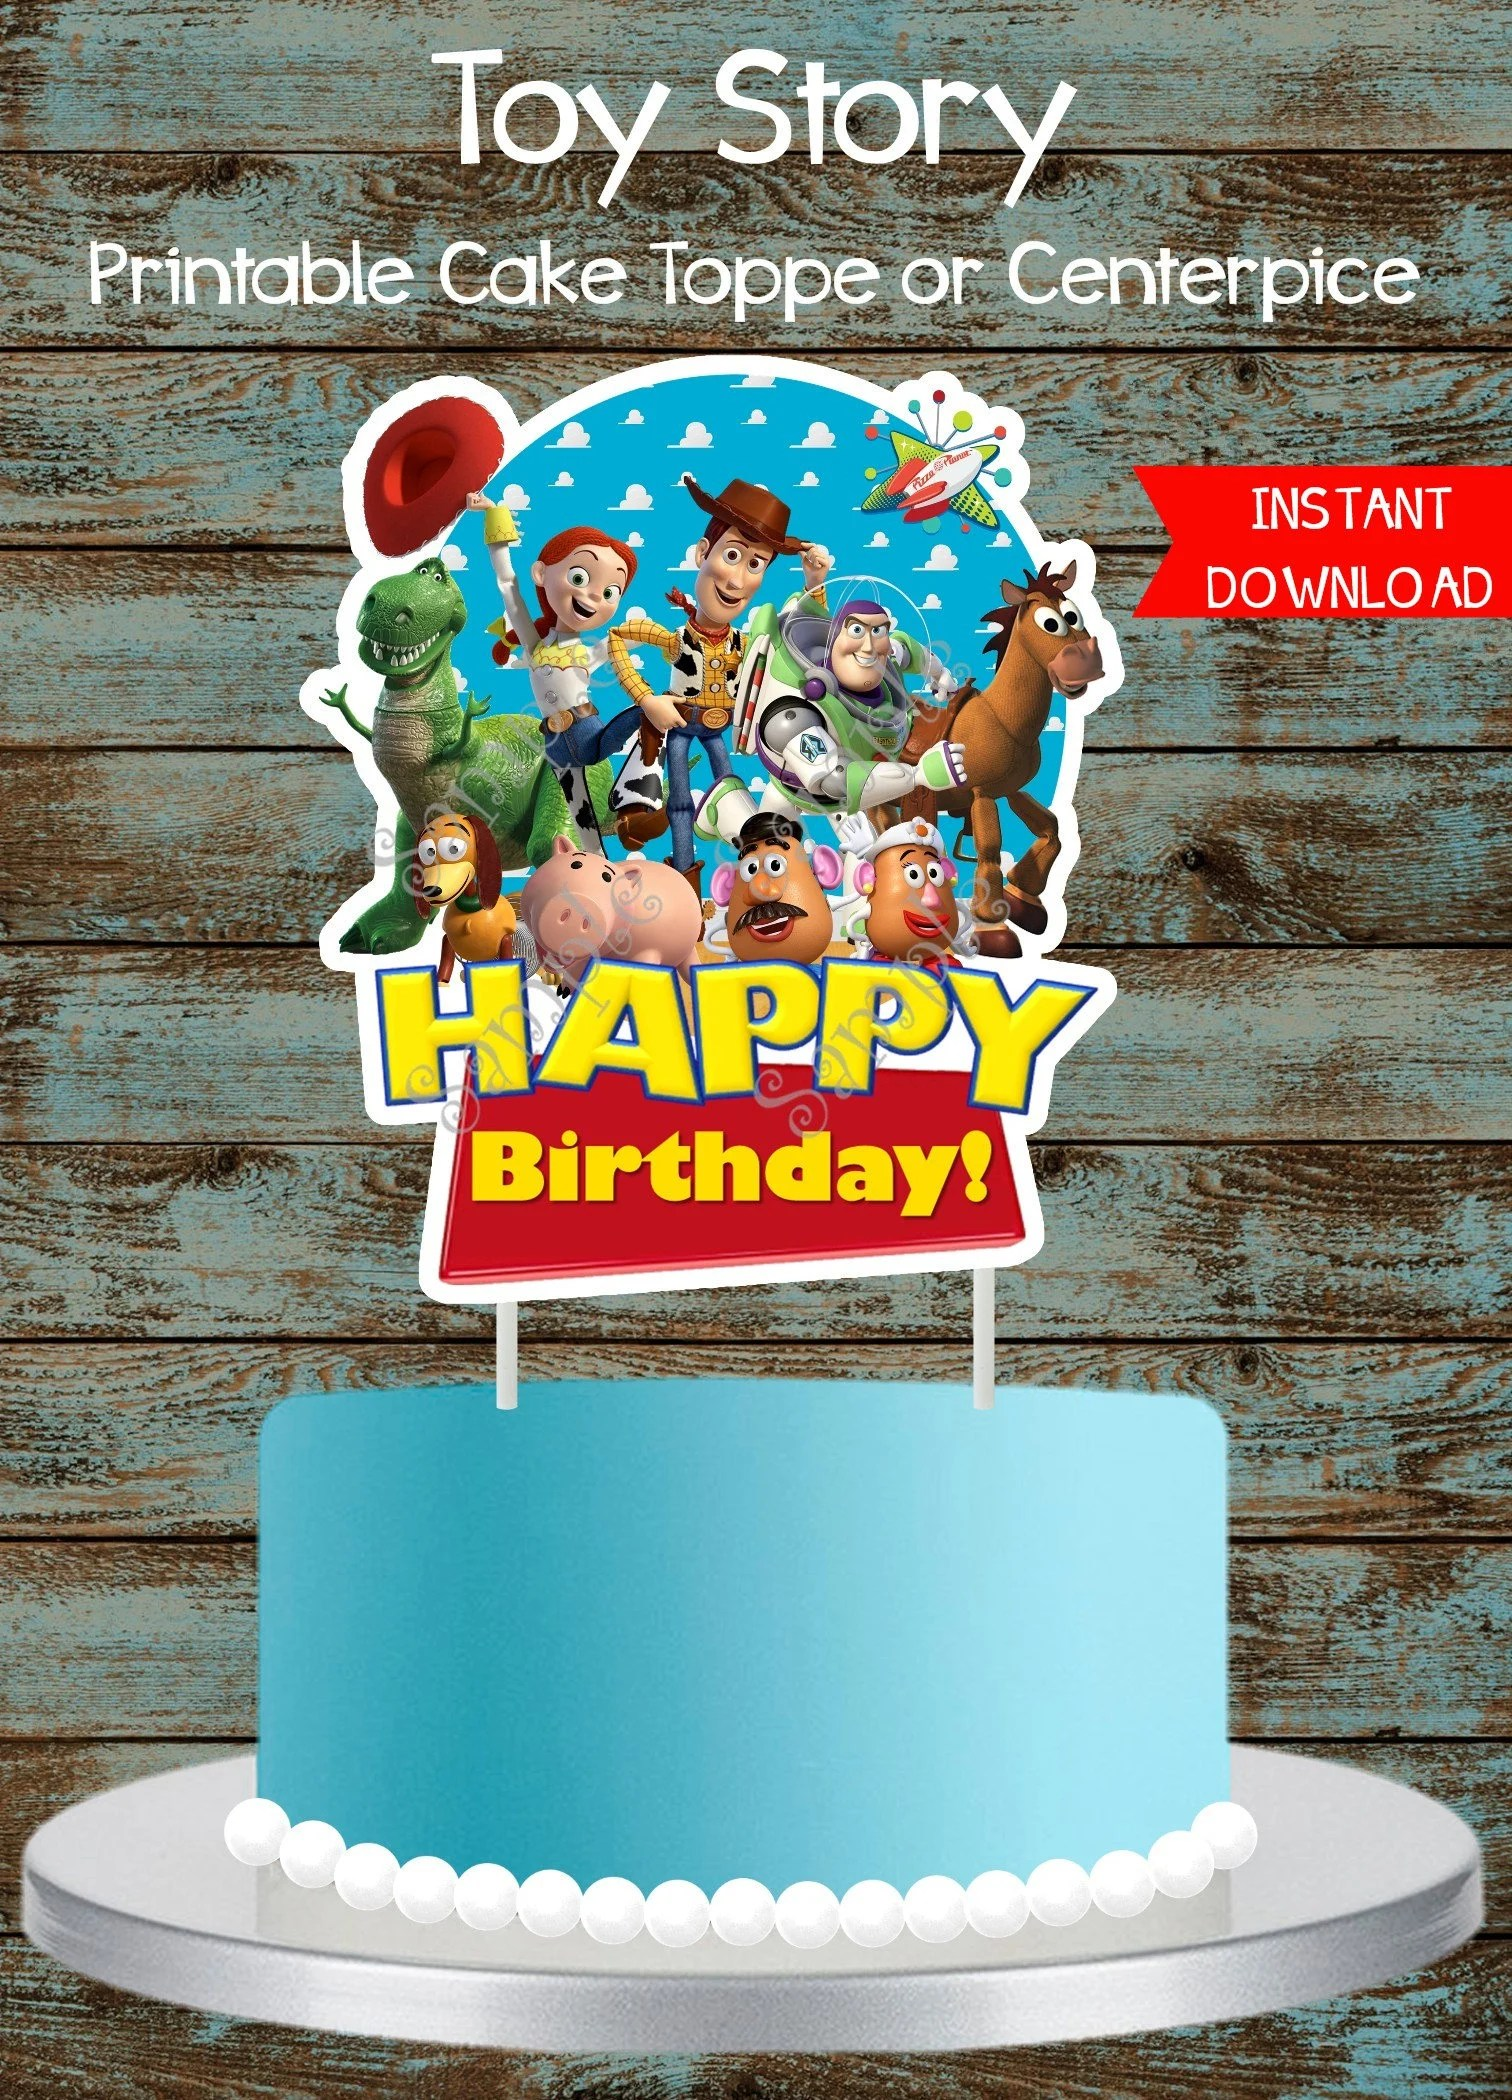 Libros De Kick Boxing Pdf Gratis Toy Story Cake Topper Toy Story Printable Cake Topper Toy Story Birthday Party Decorations Toy Story Centerpieces Toy Story 4 Birthday